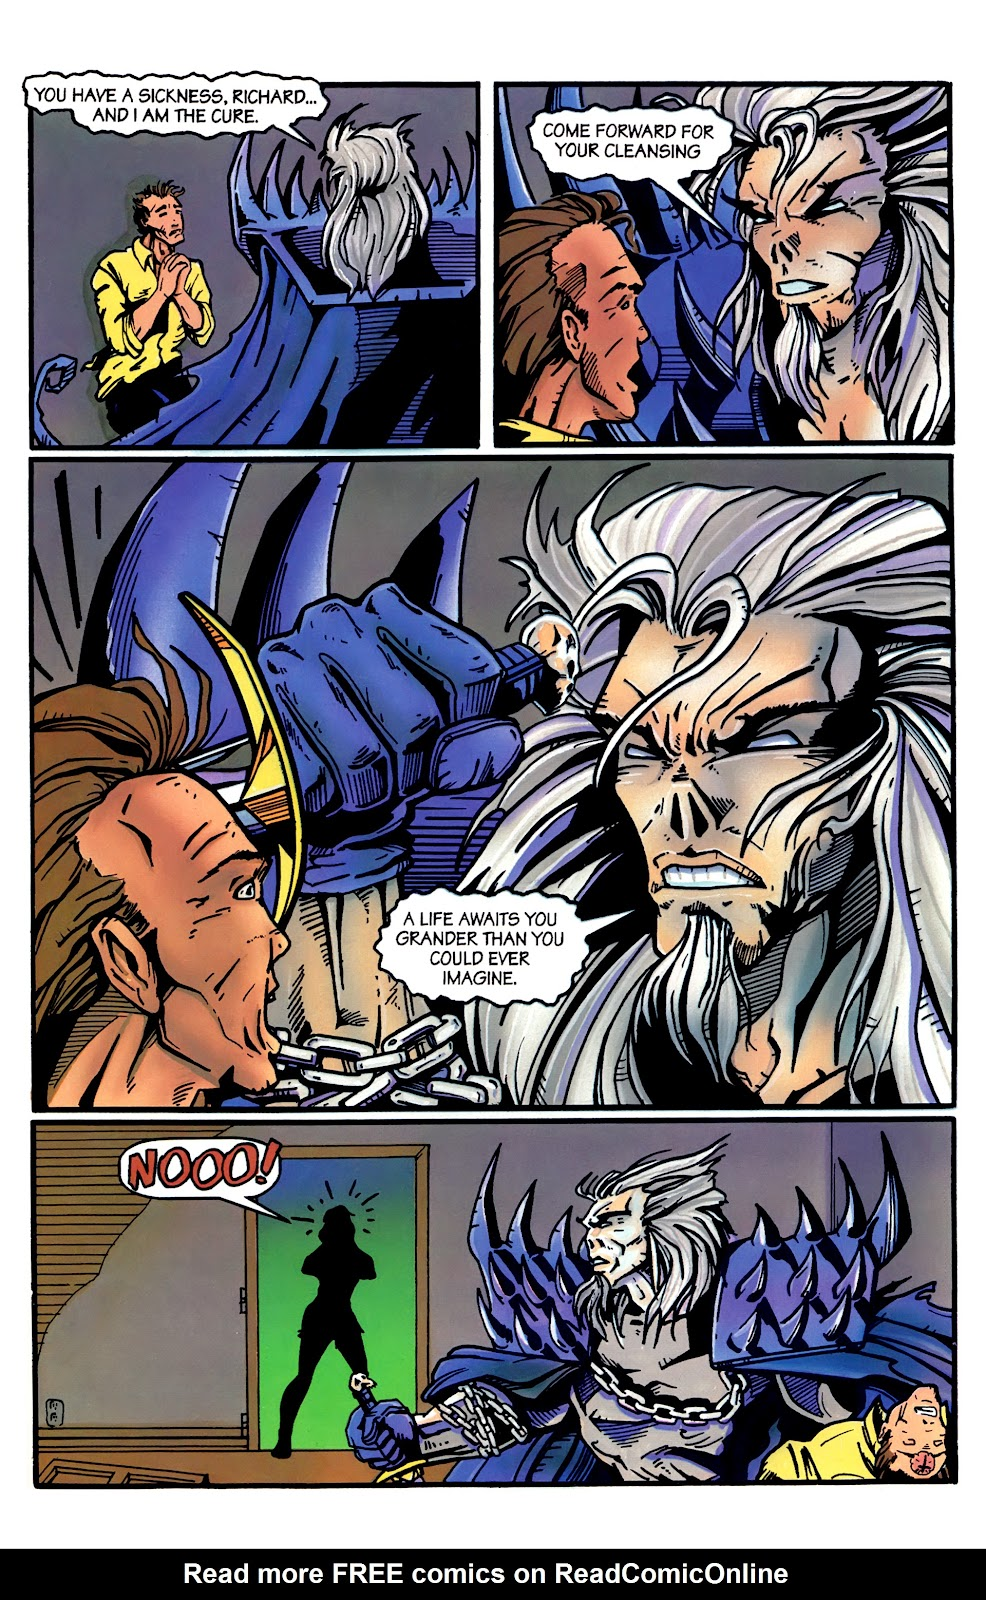 Read online Perg comic -  Issue #1 - 21